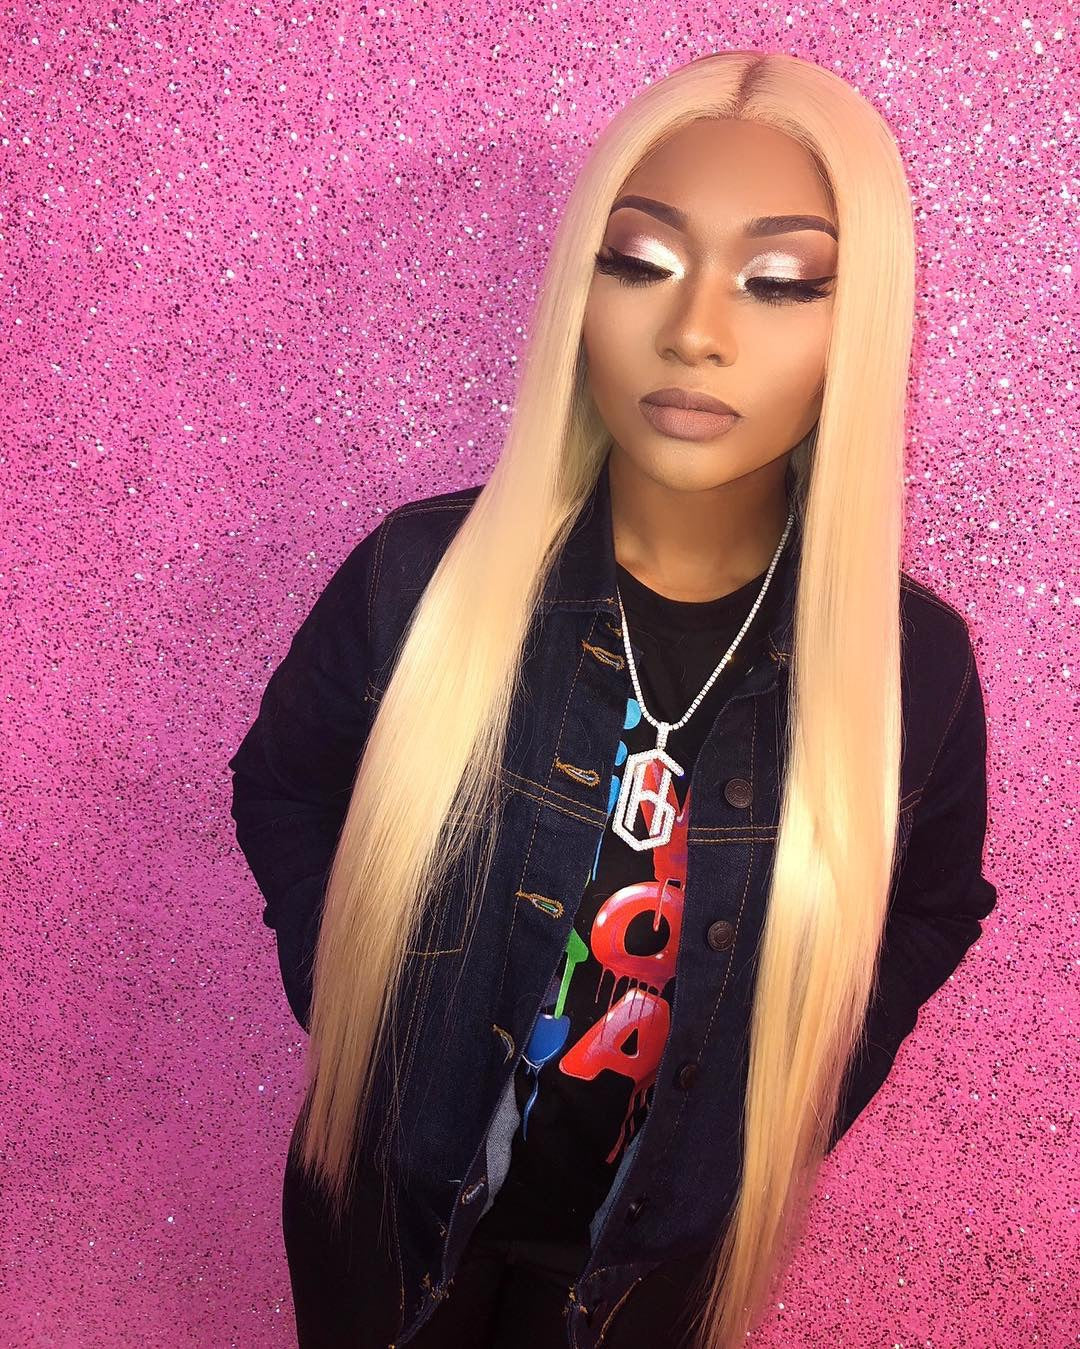 TOHYADD 1/2/3/4 Bundle Deals Blonde Straight Human Hair Extensions